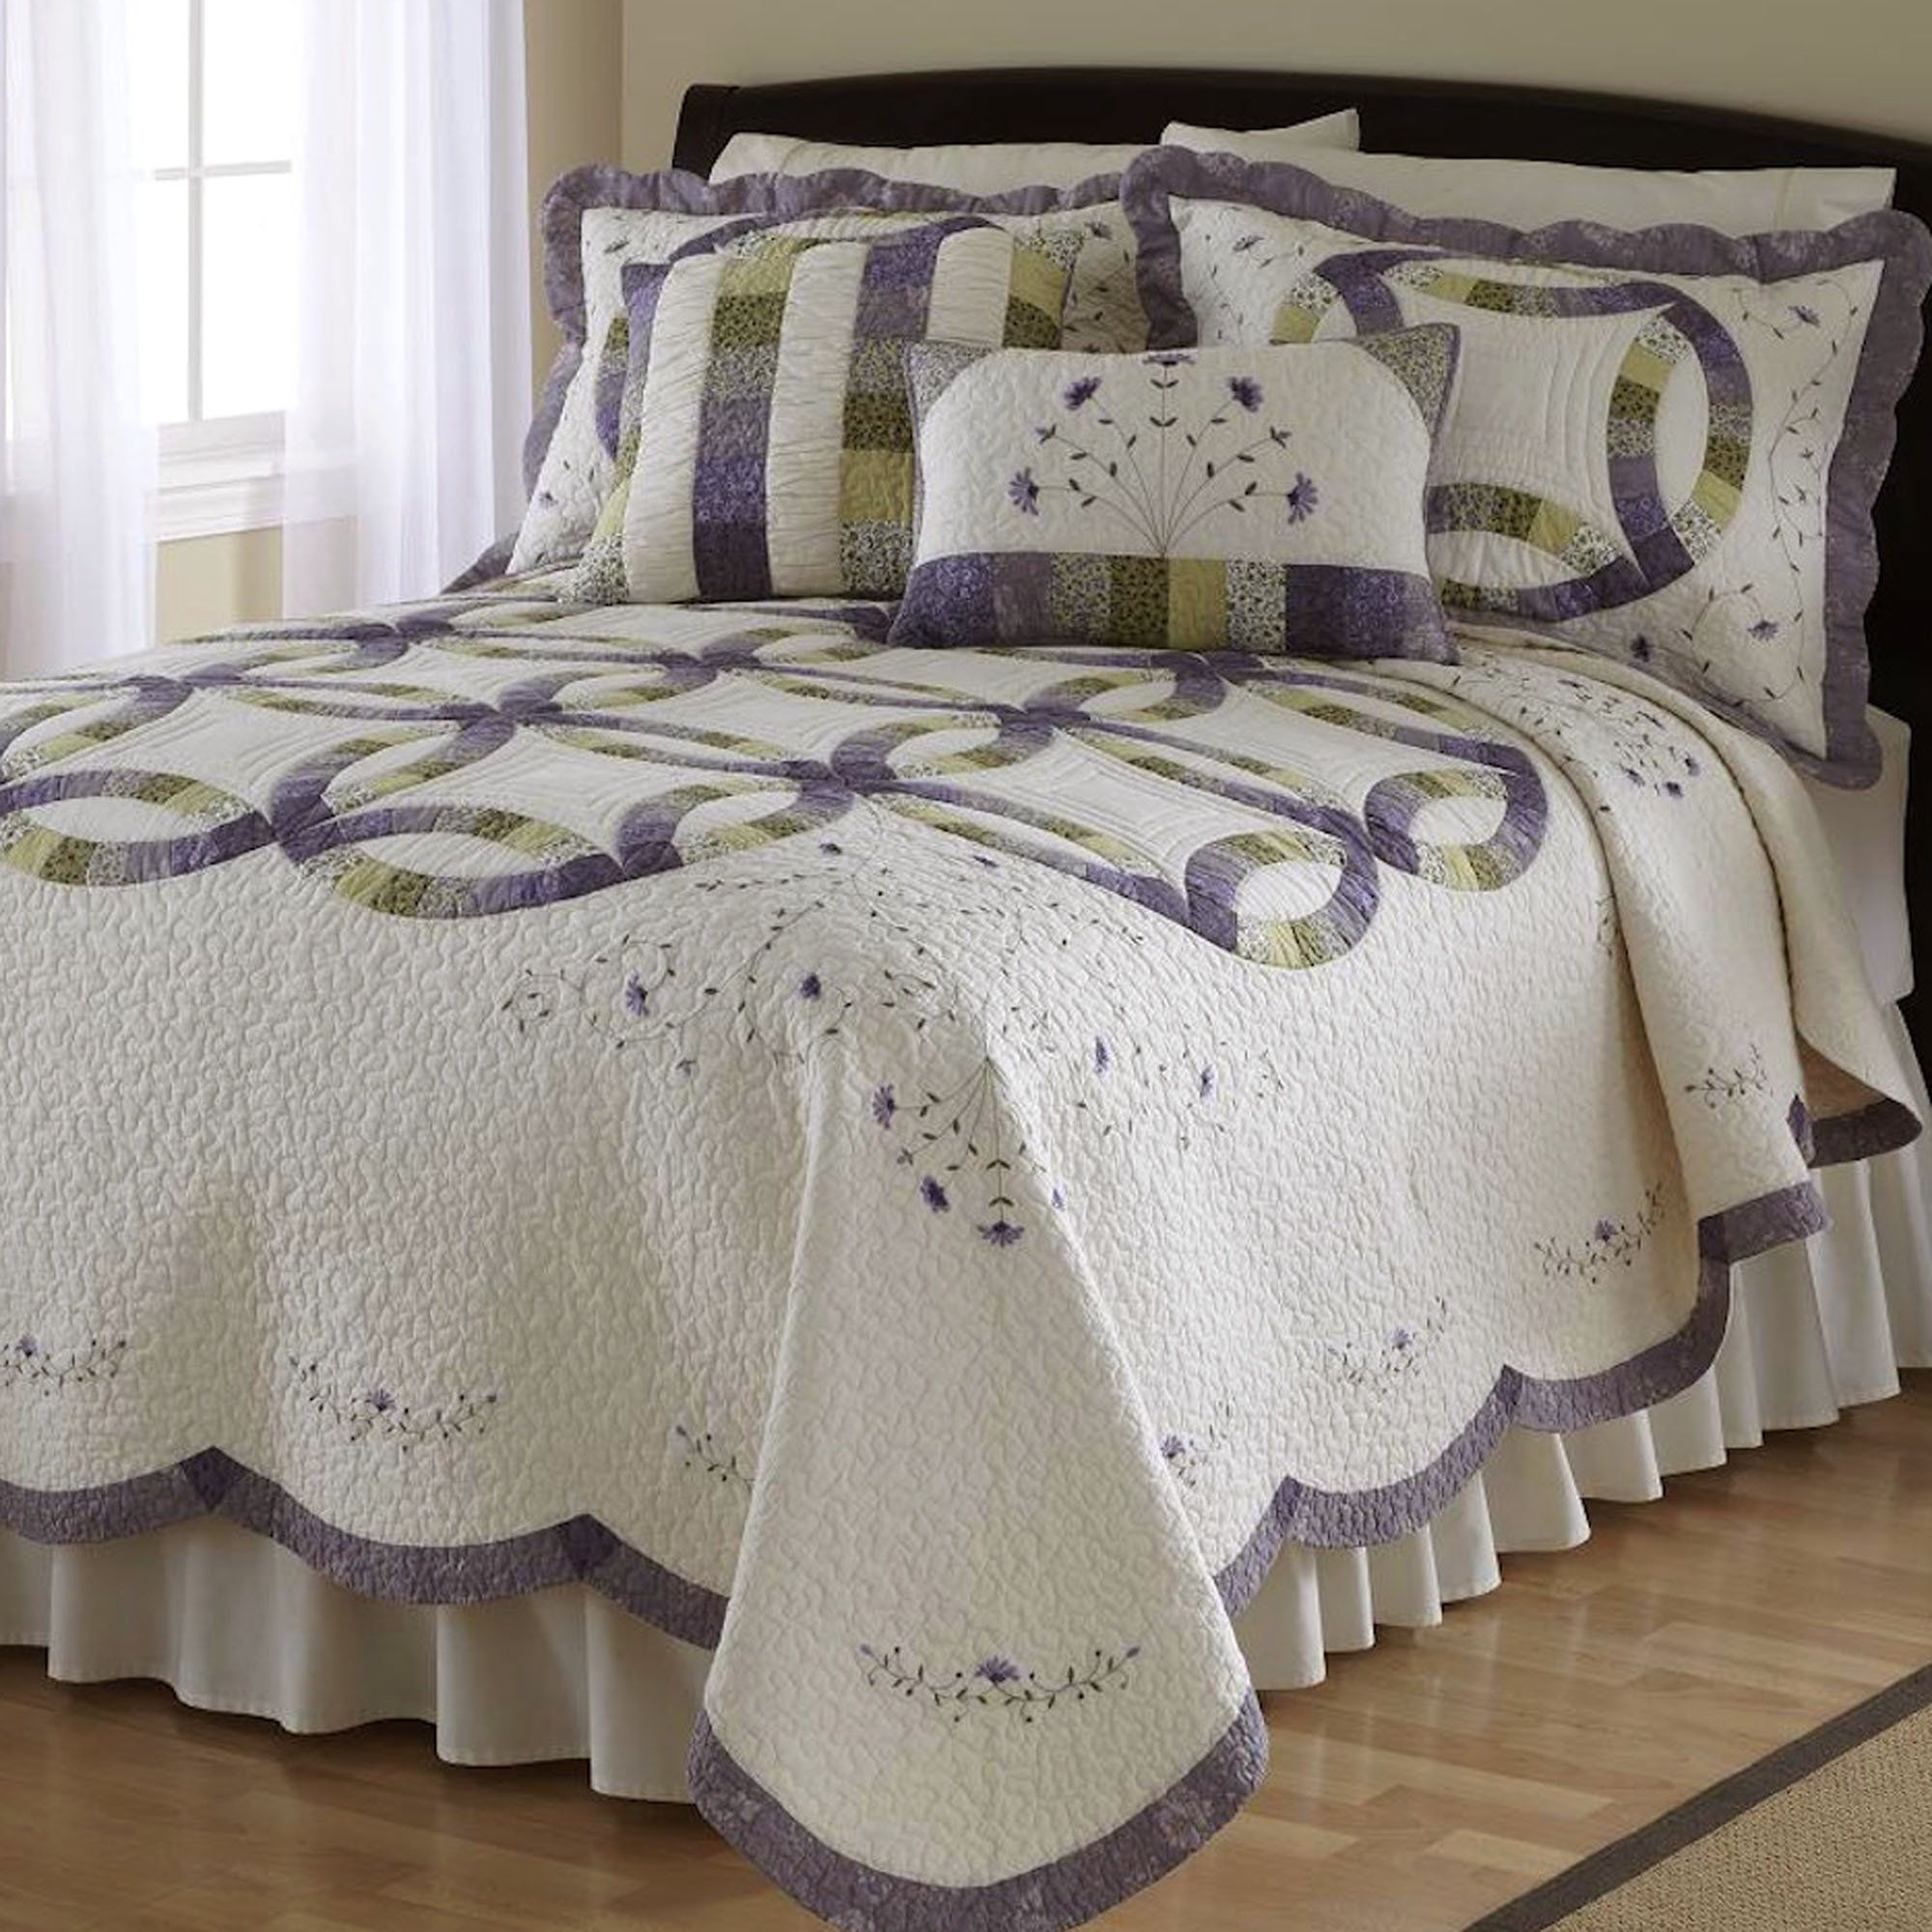 Catherine double wedding ring quilt bedding home guest